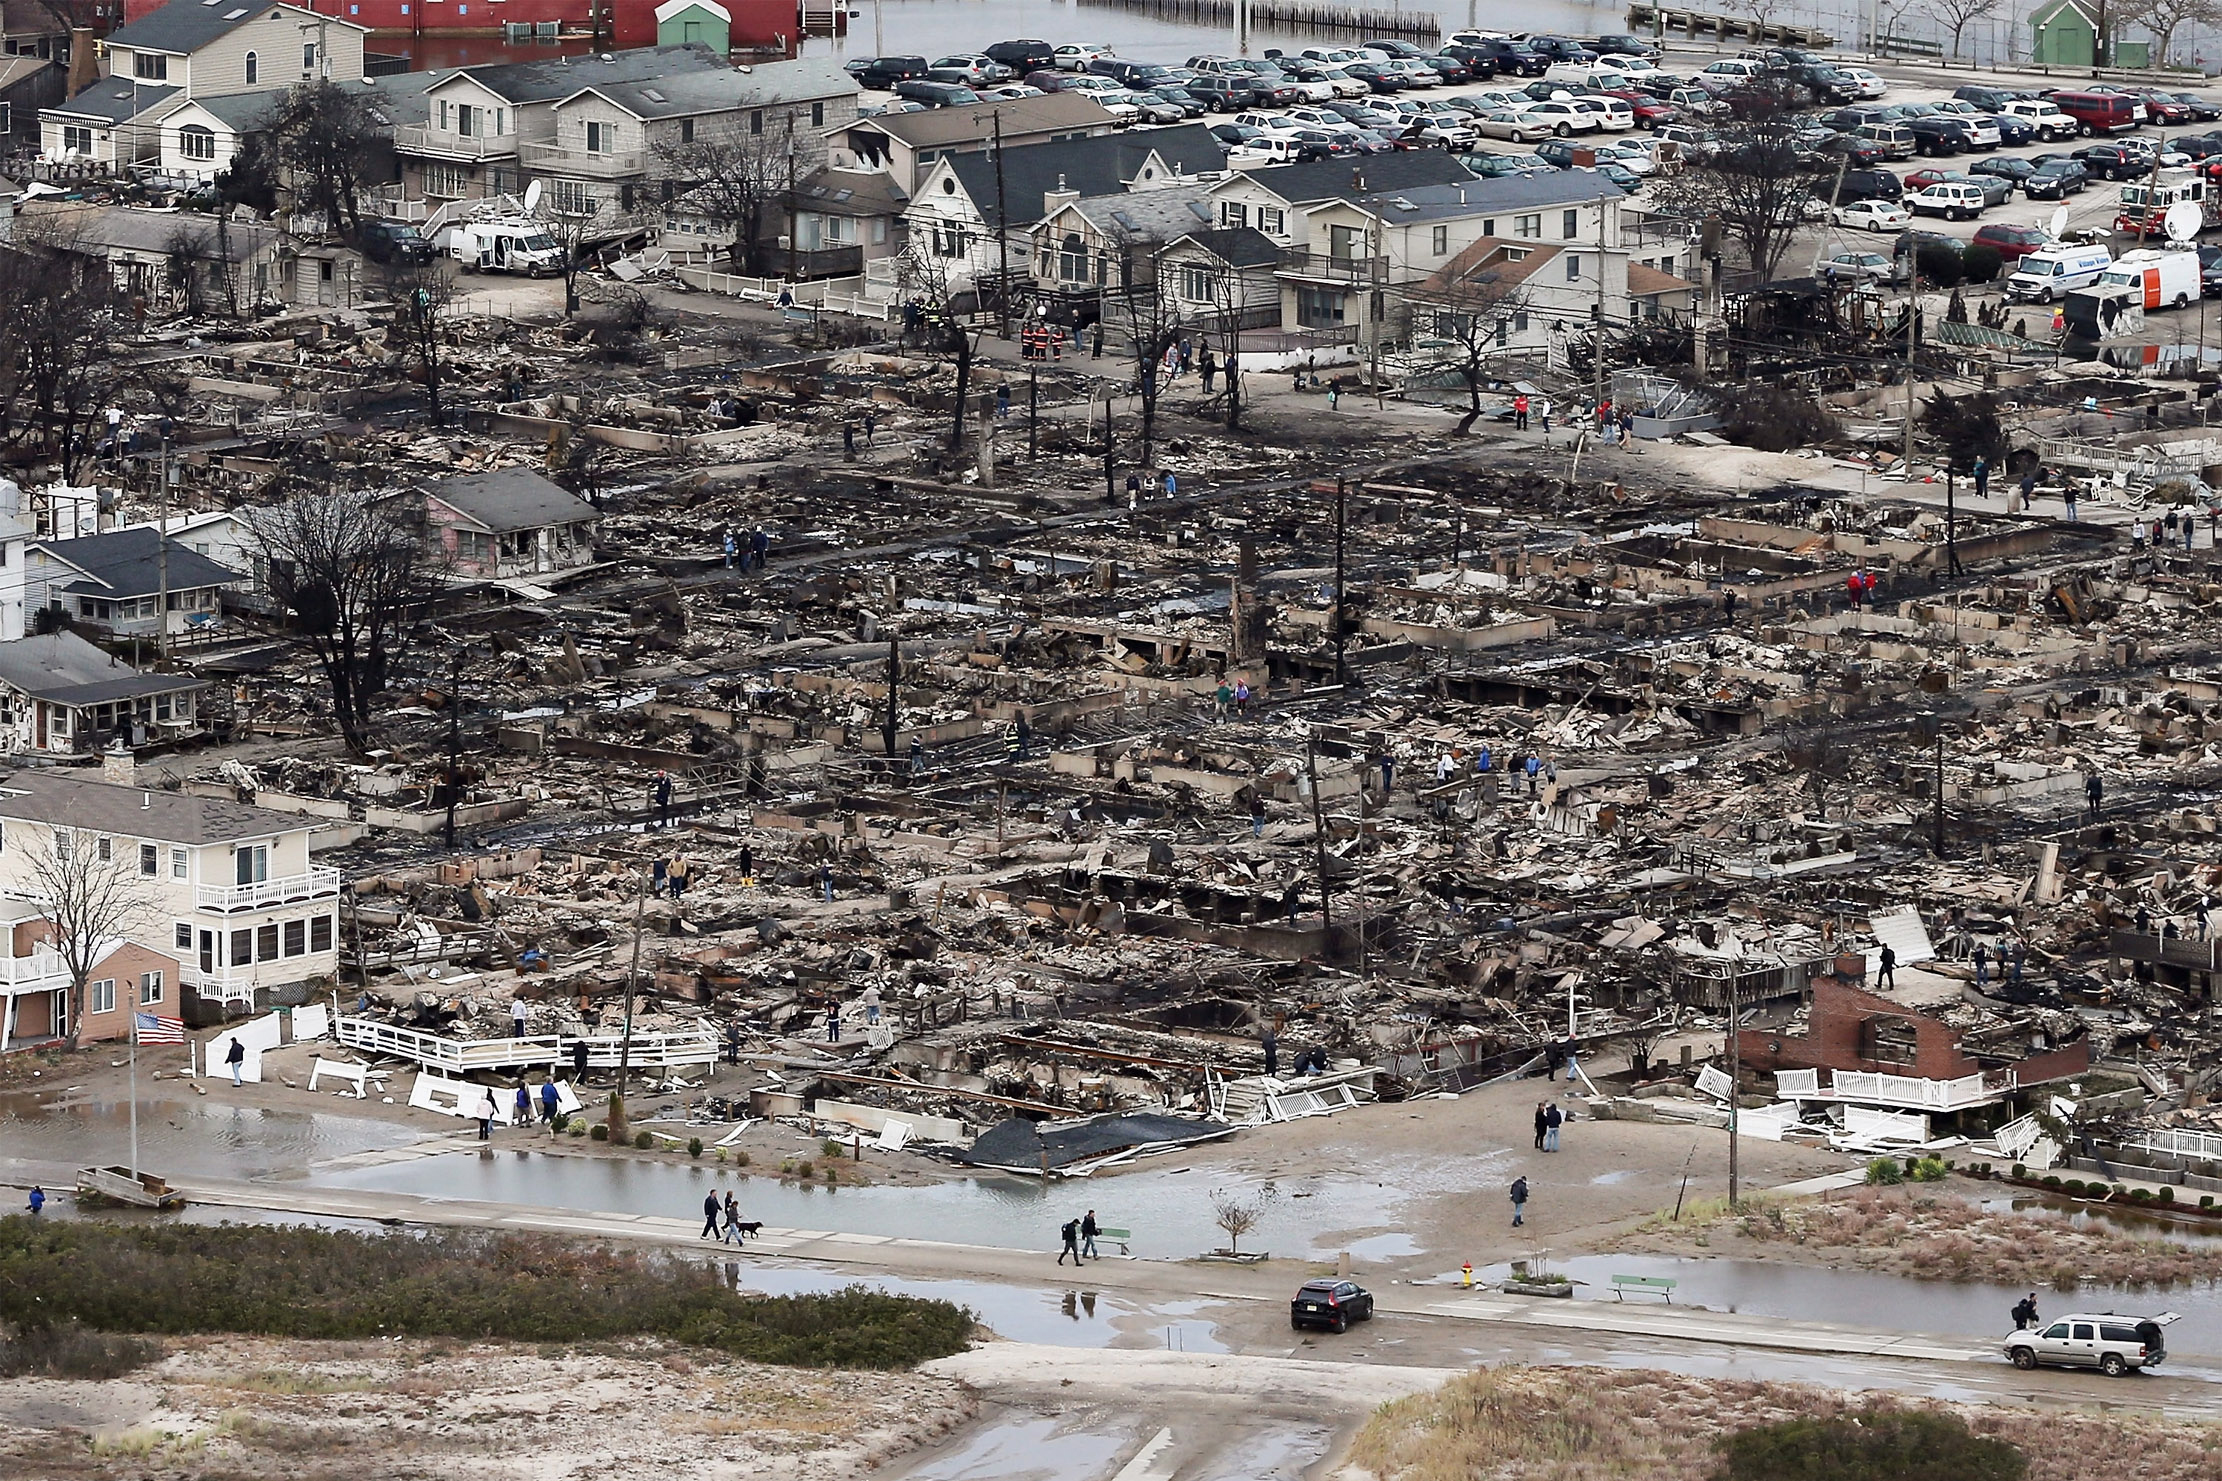 The remains of burned homes are surrounded by water in the Breezy Point neighborhood of Queens, N.Y., Oct. 31, 2012.